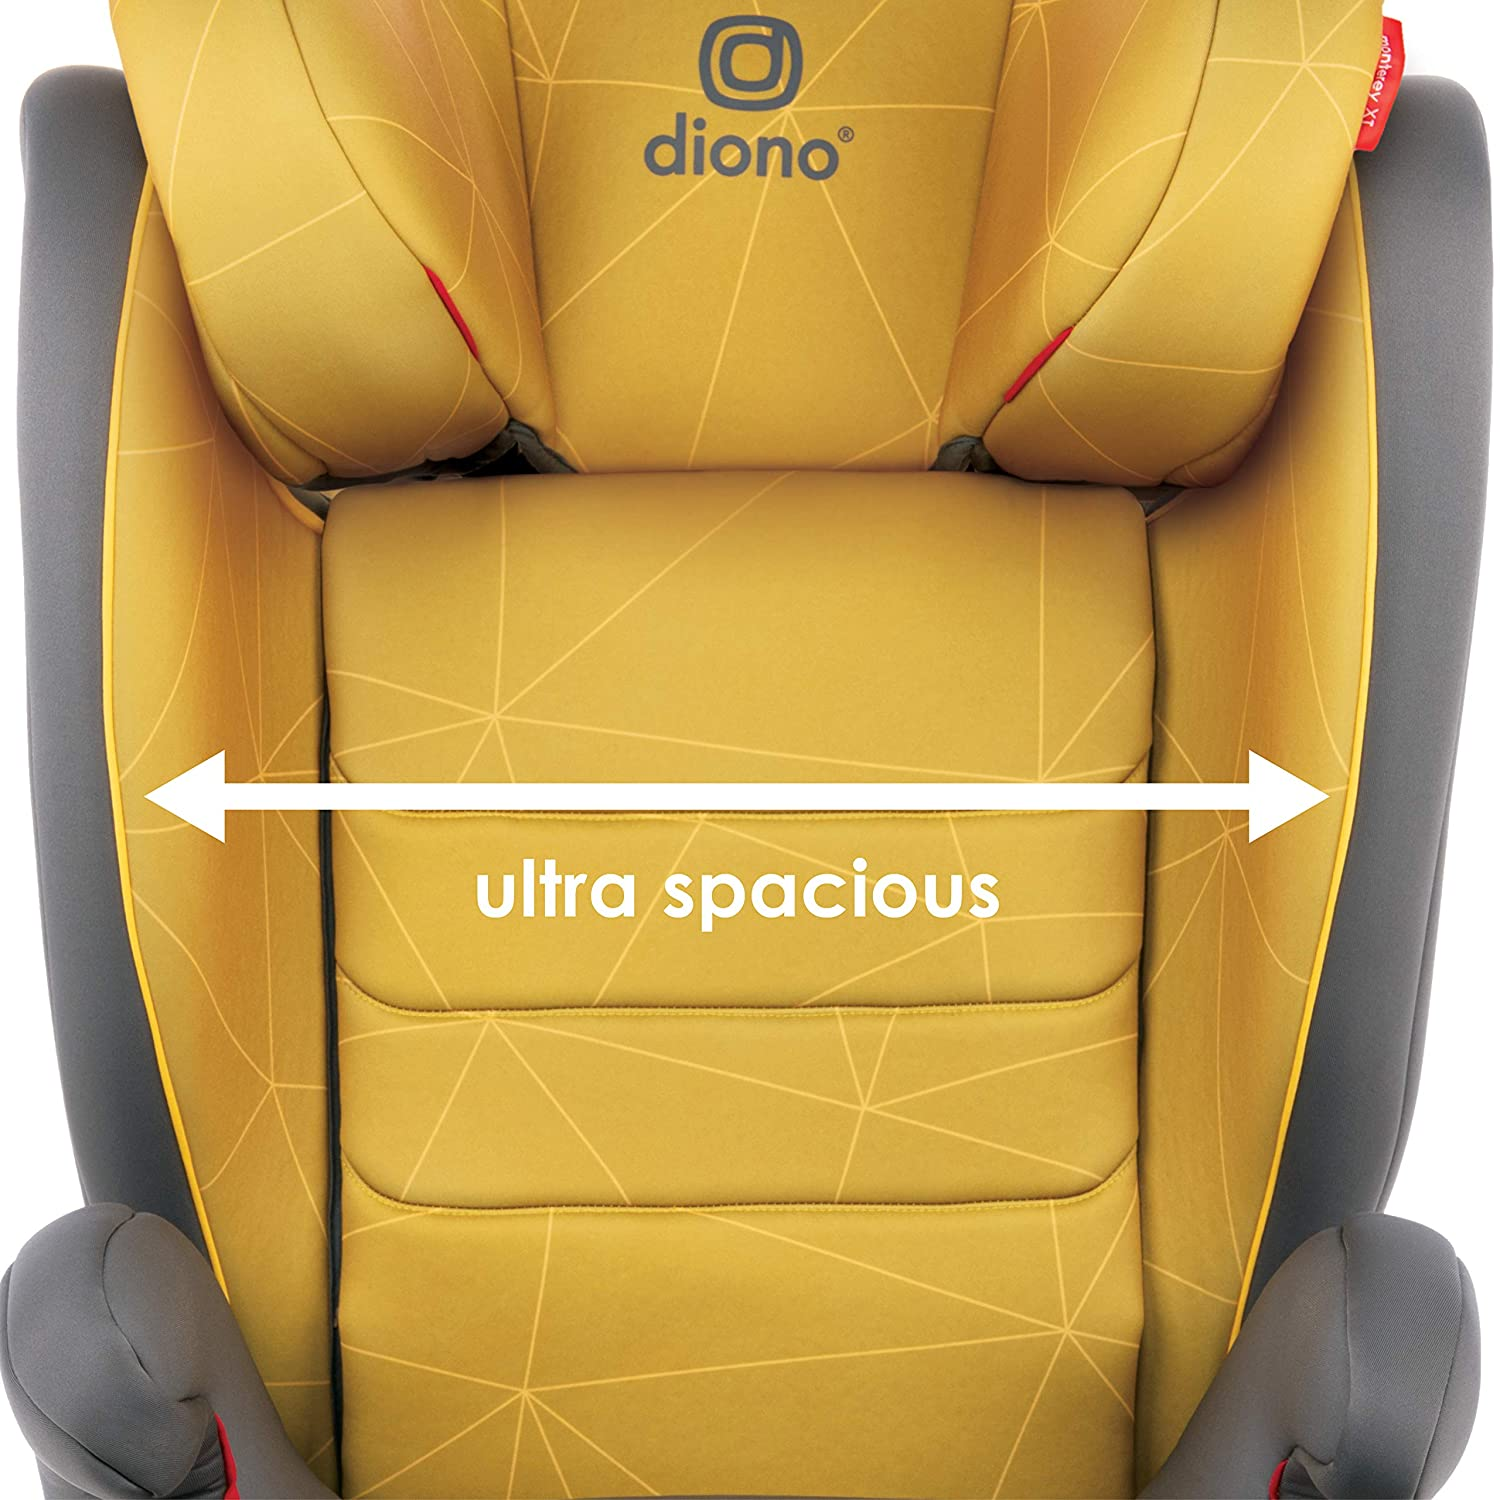 Diono Monterey XT Latch Blue 2-in-1 Expandable Booster Seat